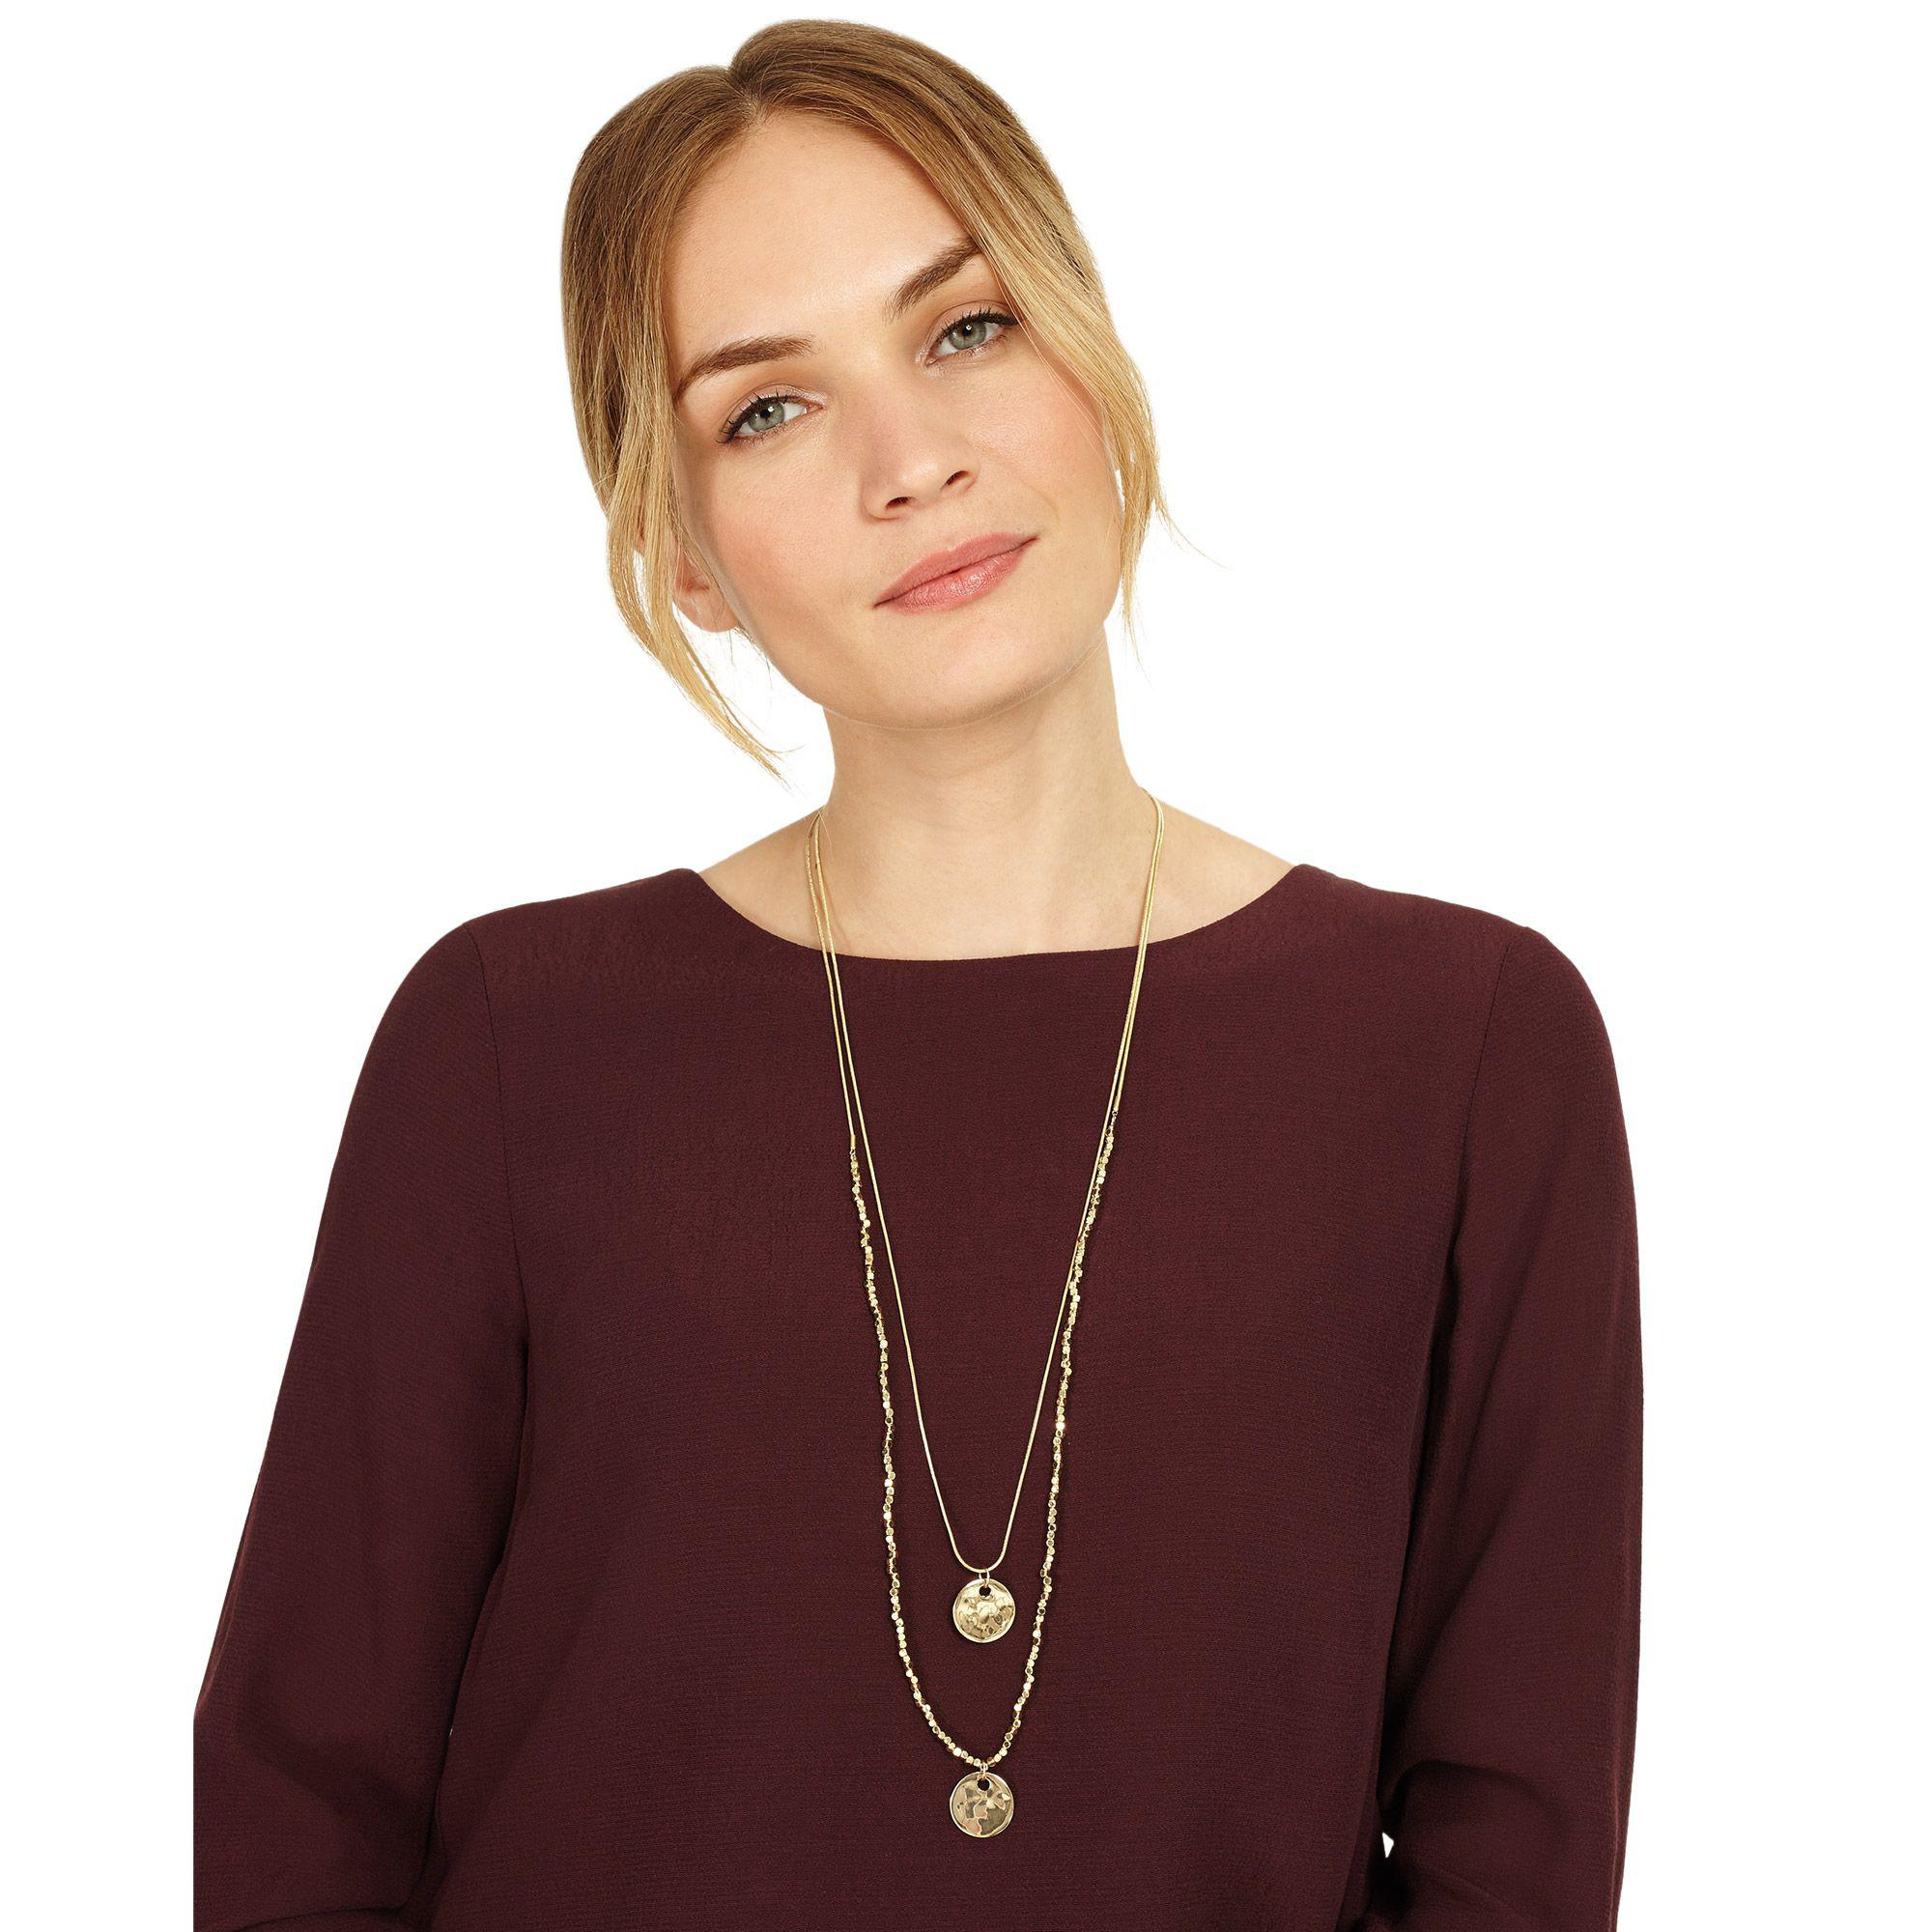 Phase Eight Gold Tiana Necklace in Metallic